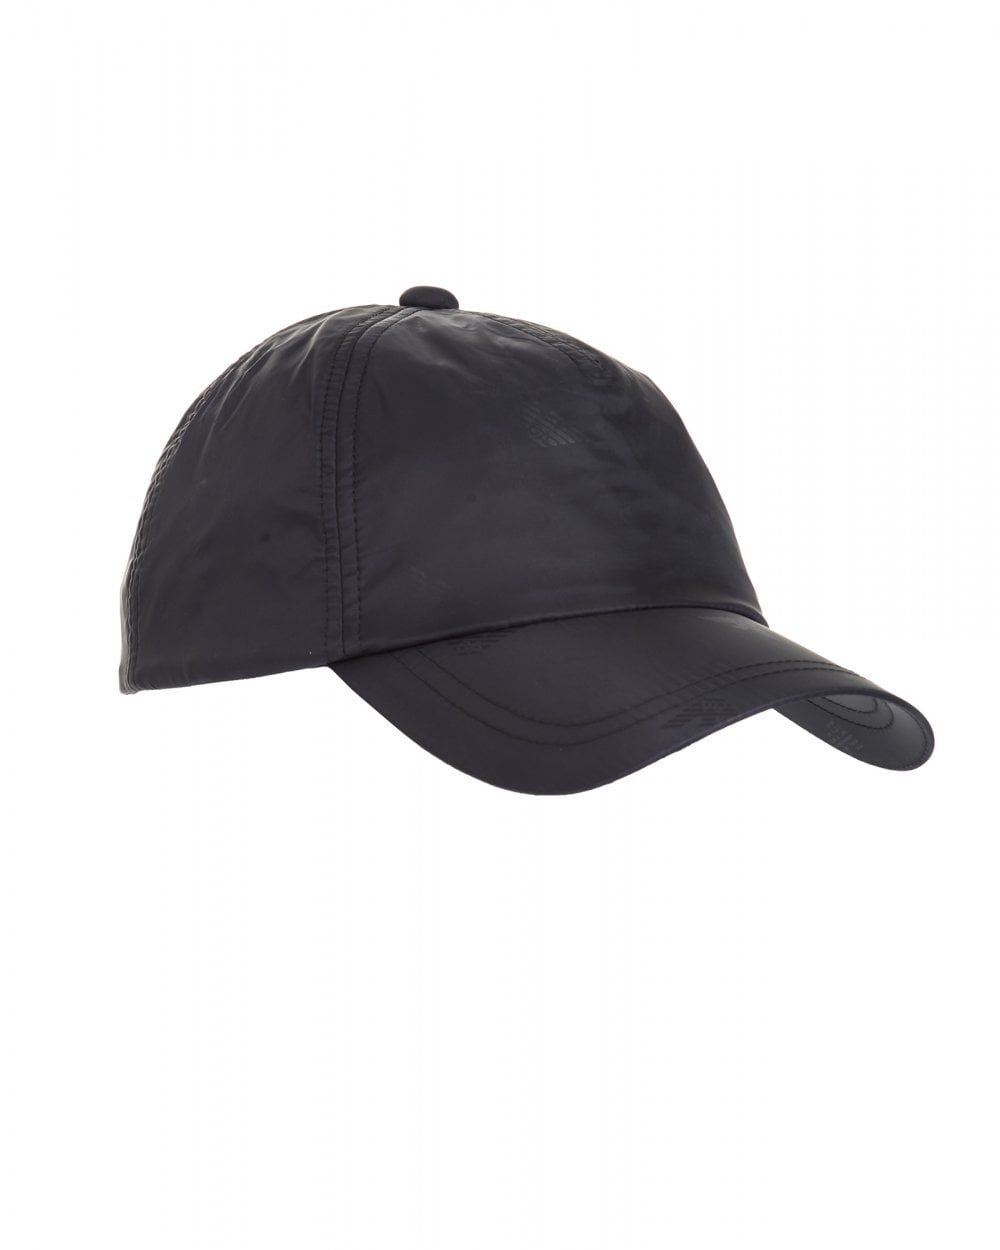 Emporio Armani Mens All Over Logo Baseball Cap, Black Hat 09309c29bd4